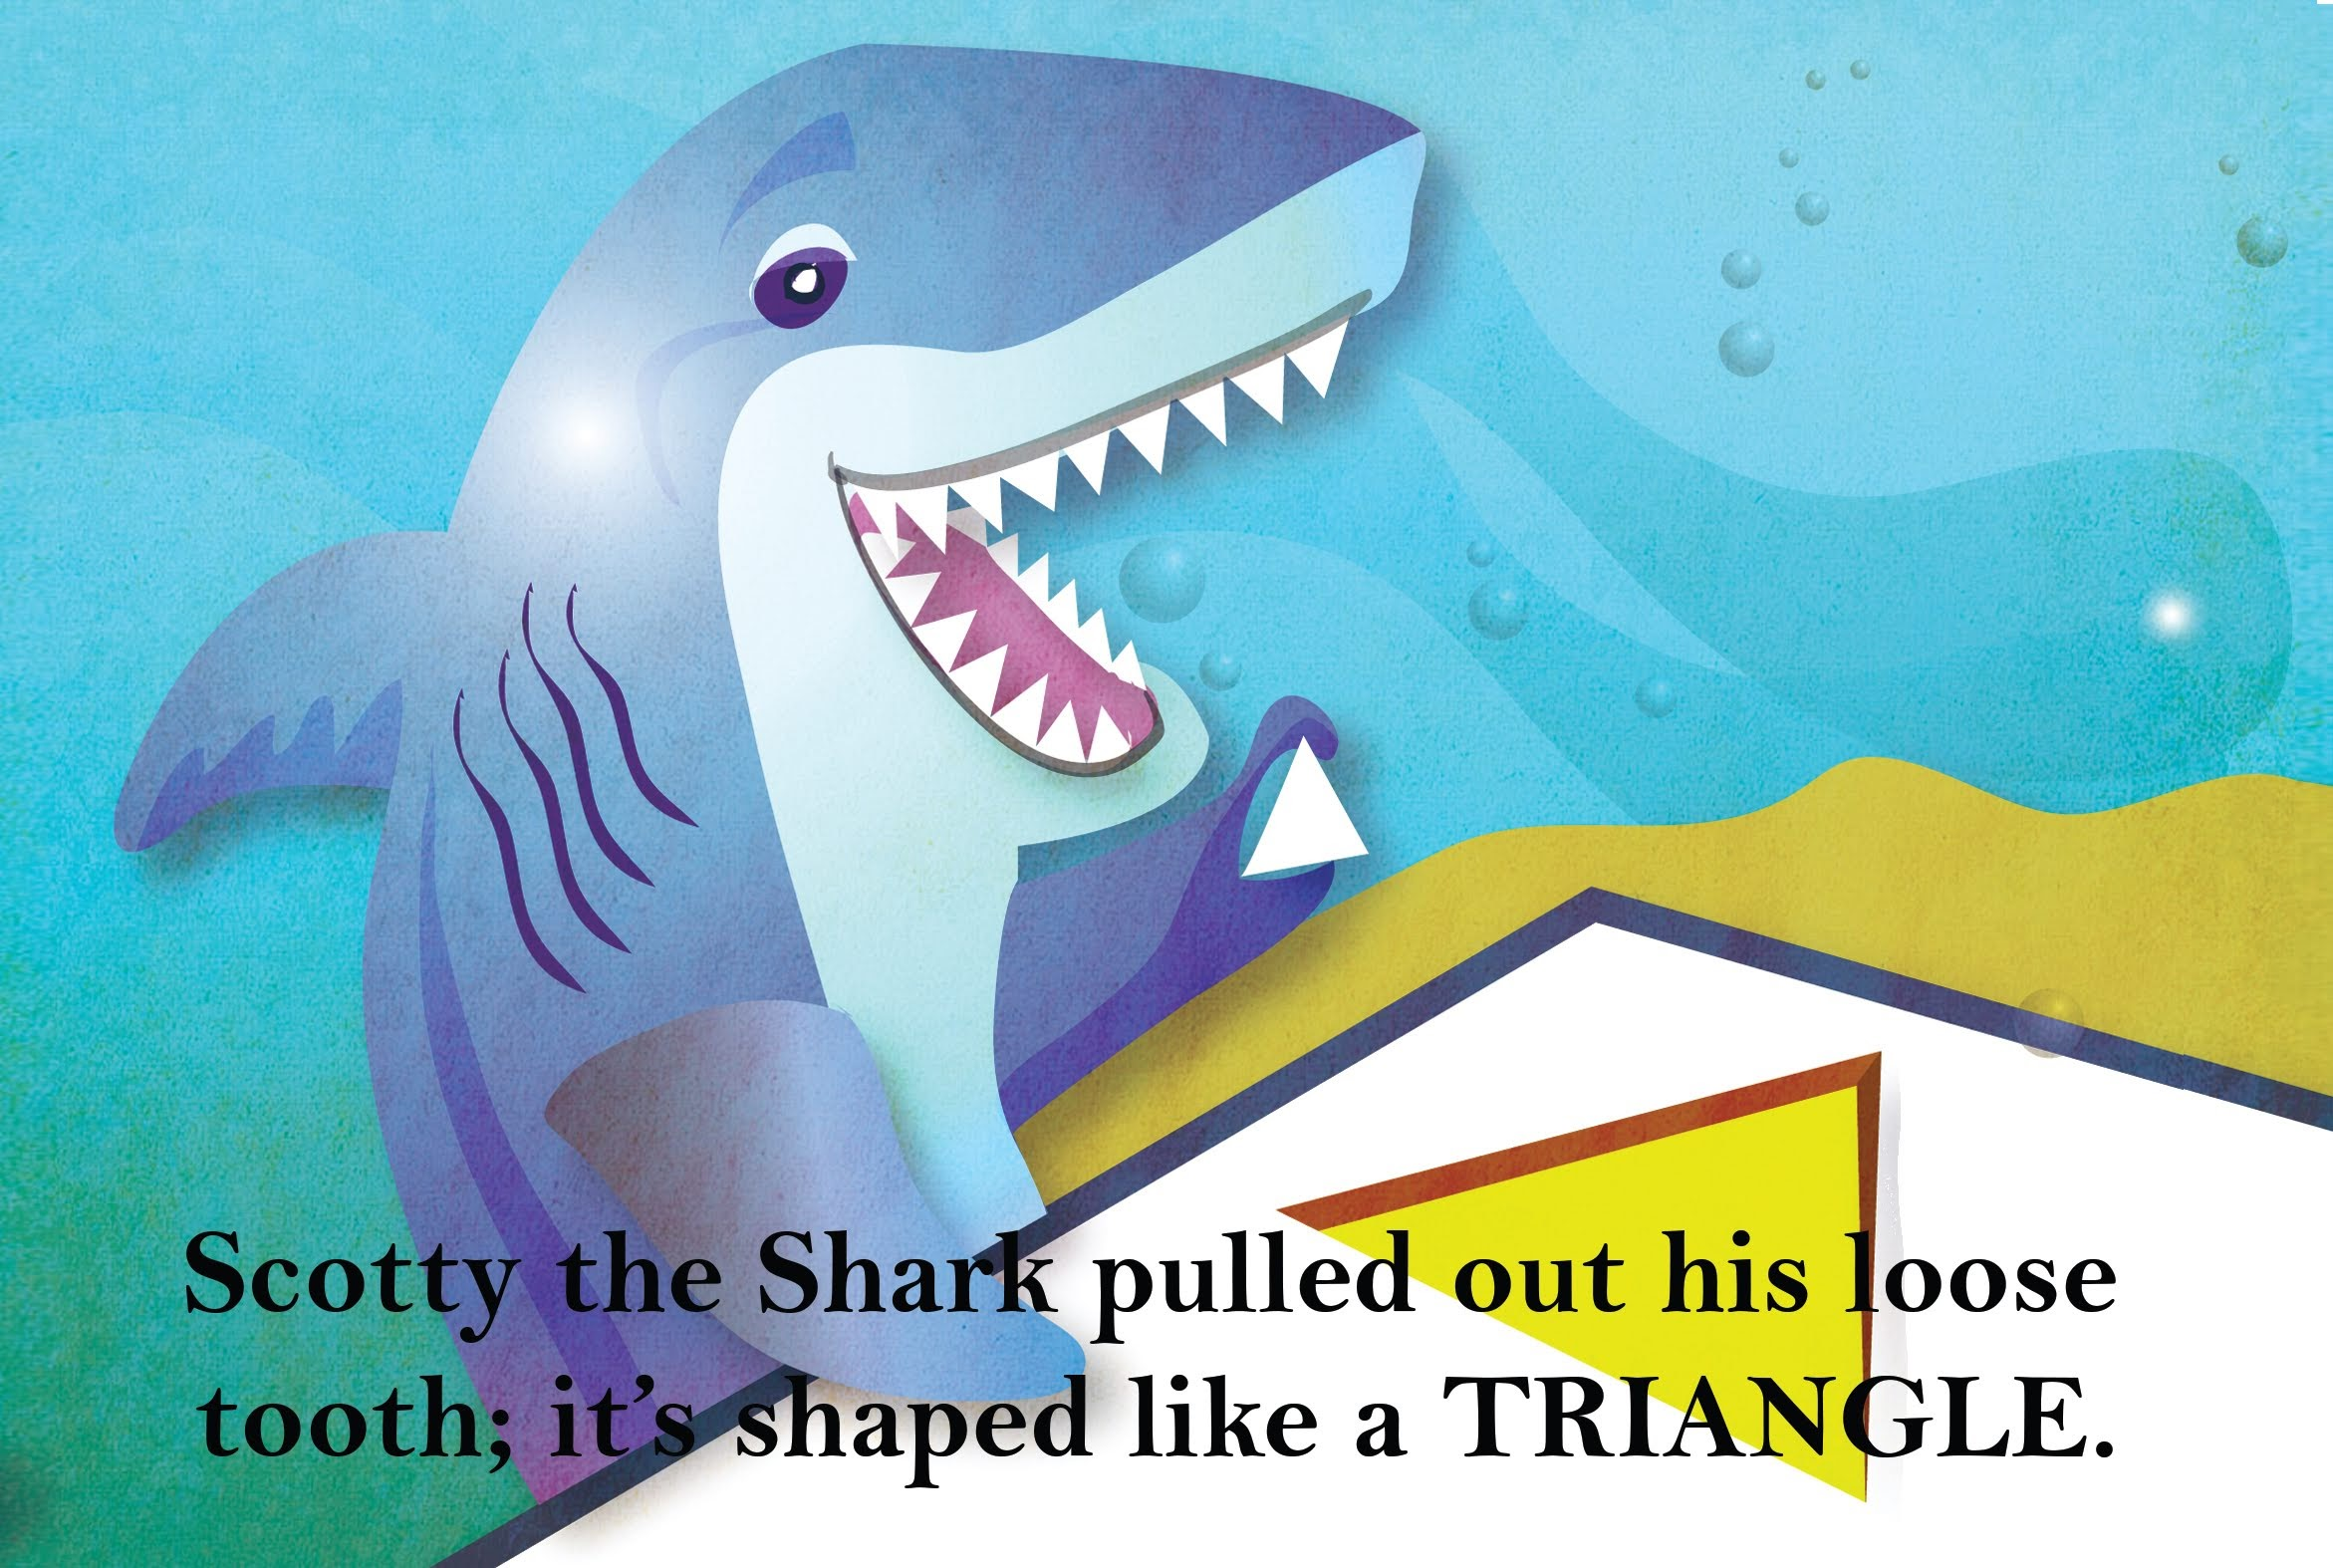 slide 2  Beginning Readers - Oliver's Birthday, by Bonnie Lady Lee. [Excerpt] Scotty the Shark pulled out his loose tooth. It's shaped like a triangle.